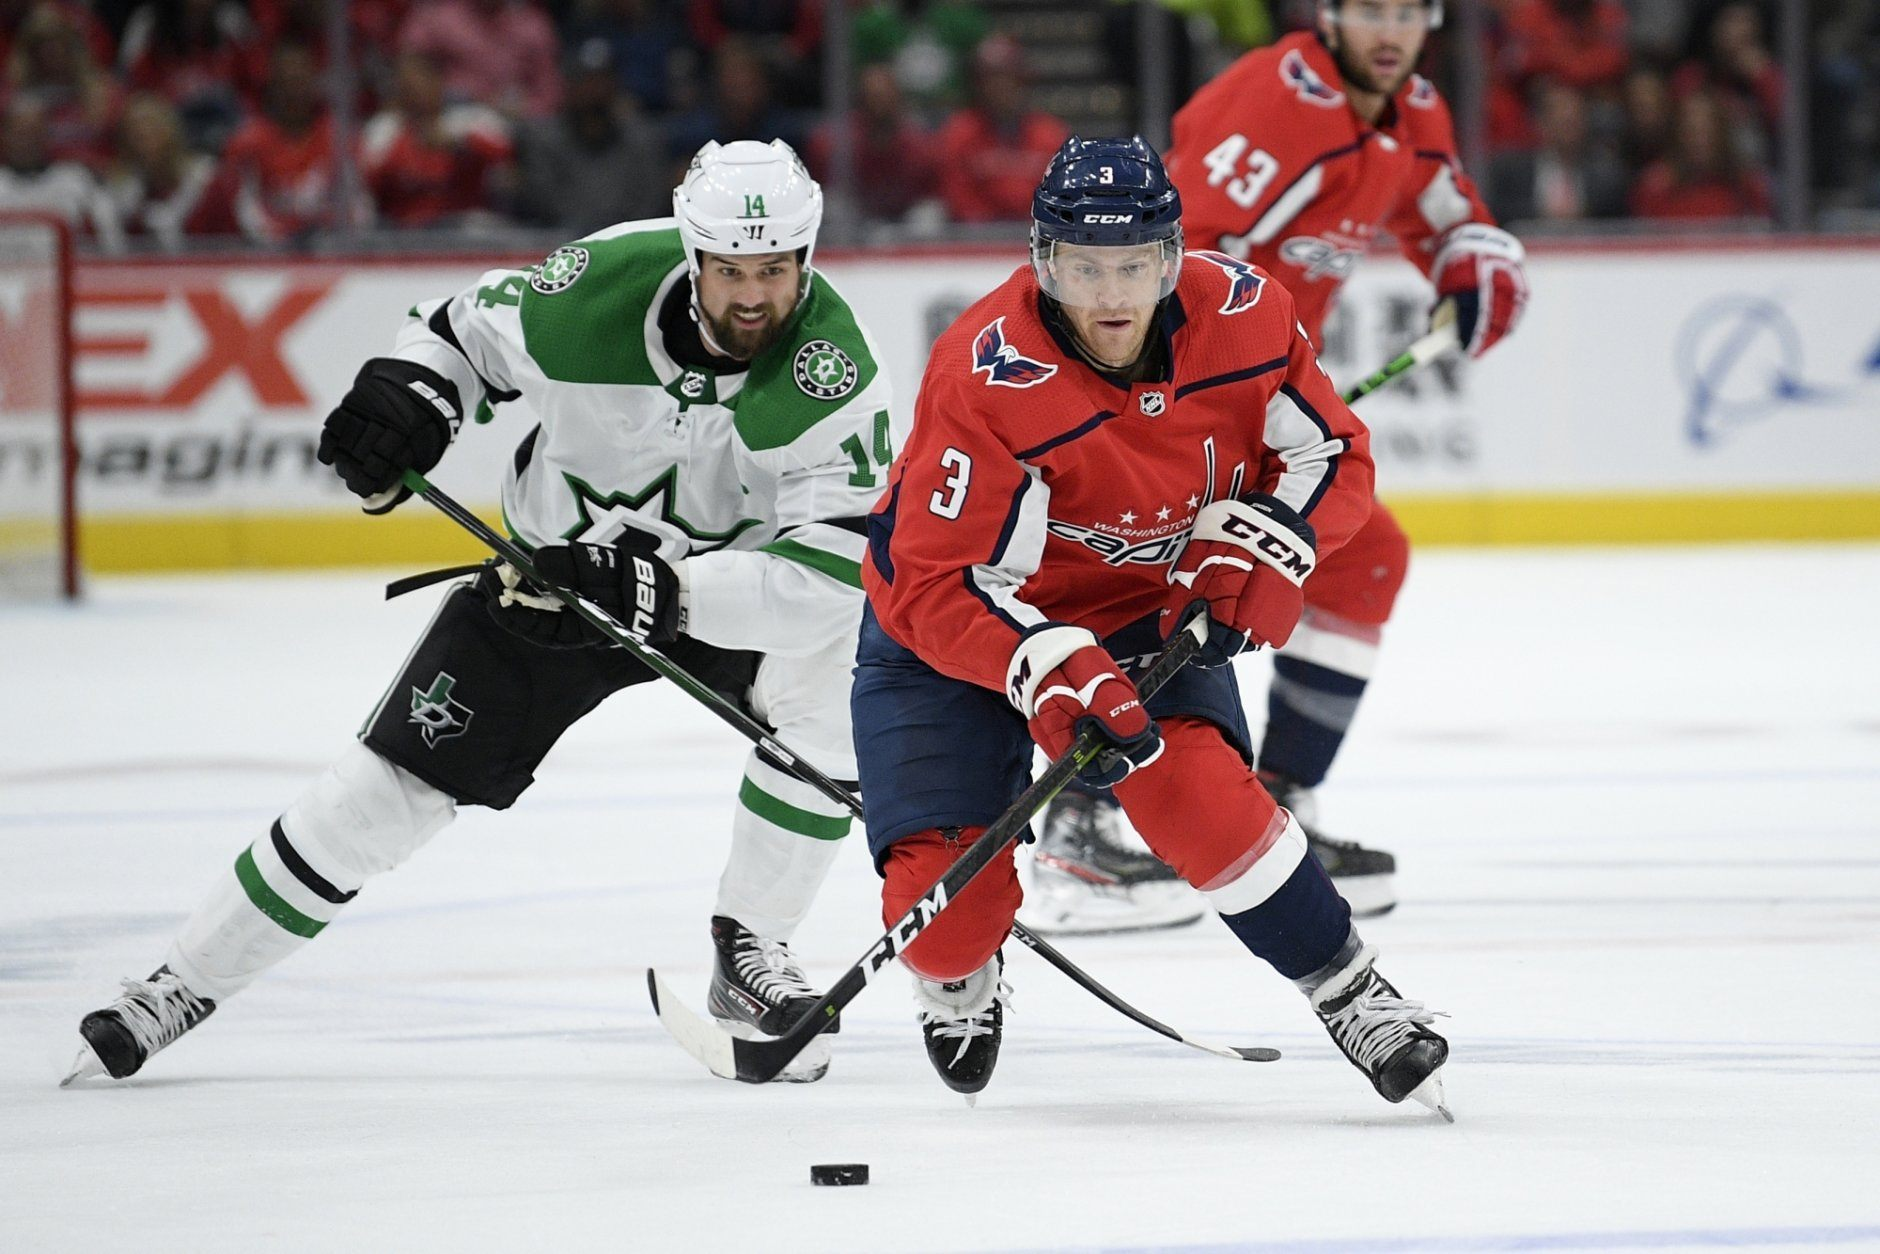 Washington Capitals defenseman Nick Jensen (3) skates with the puck next to Dallas Stars left wing Jamie Benn (14) during the second period of an NHL hockey game Tuesday, Oct. 8, 2019, in Washington. (AP Photo/Nick Wass)